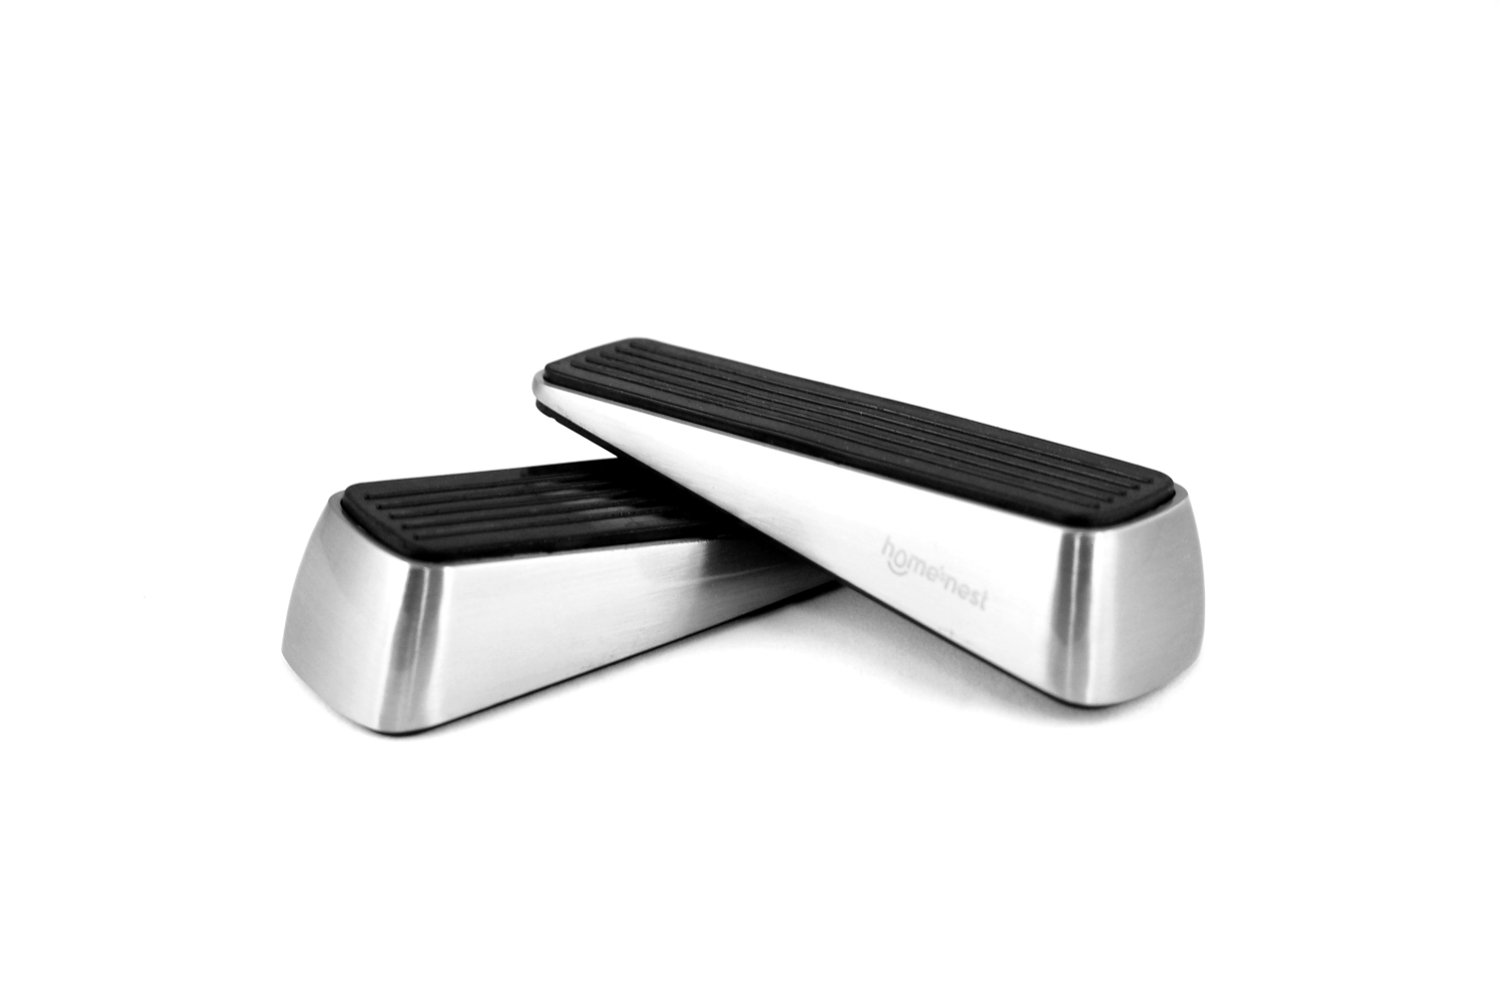 Homesnest Door Stopper made of Stainless Steel and Rubber, easily Wedge Heavy Doors on All Floor Surface, Strong Grip, Non-Slide bonus Finger Protector Doorstop - 2 stoppers